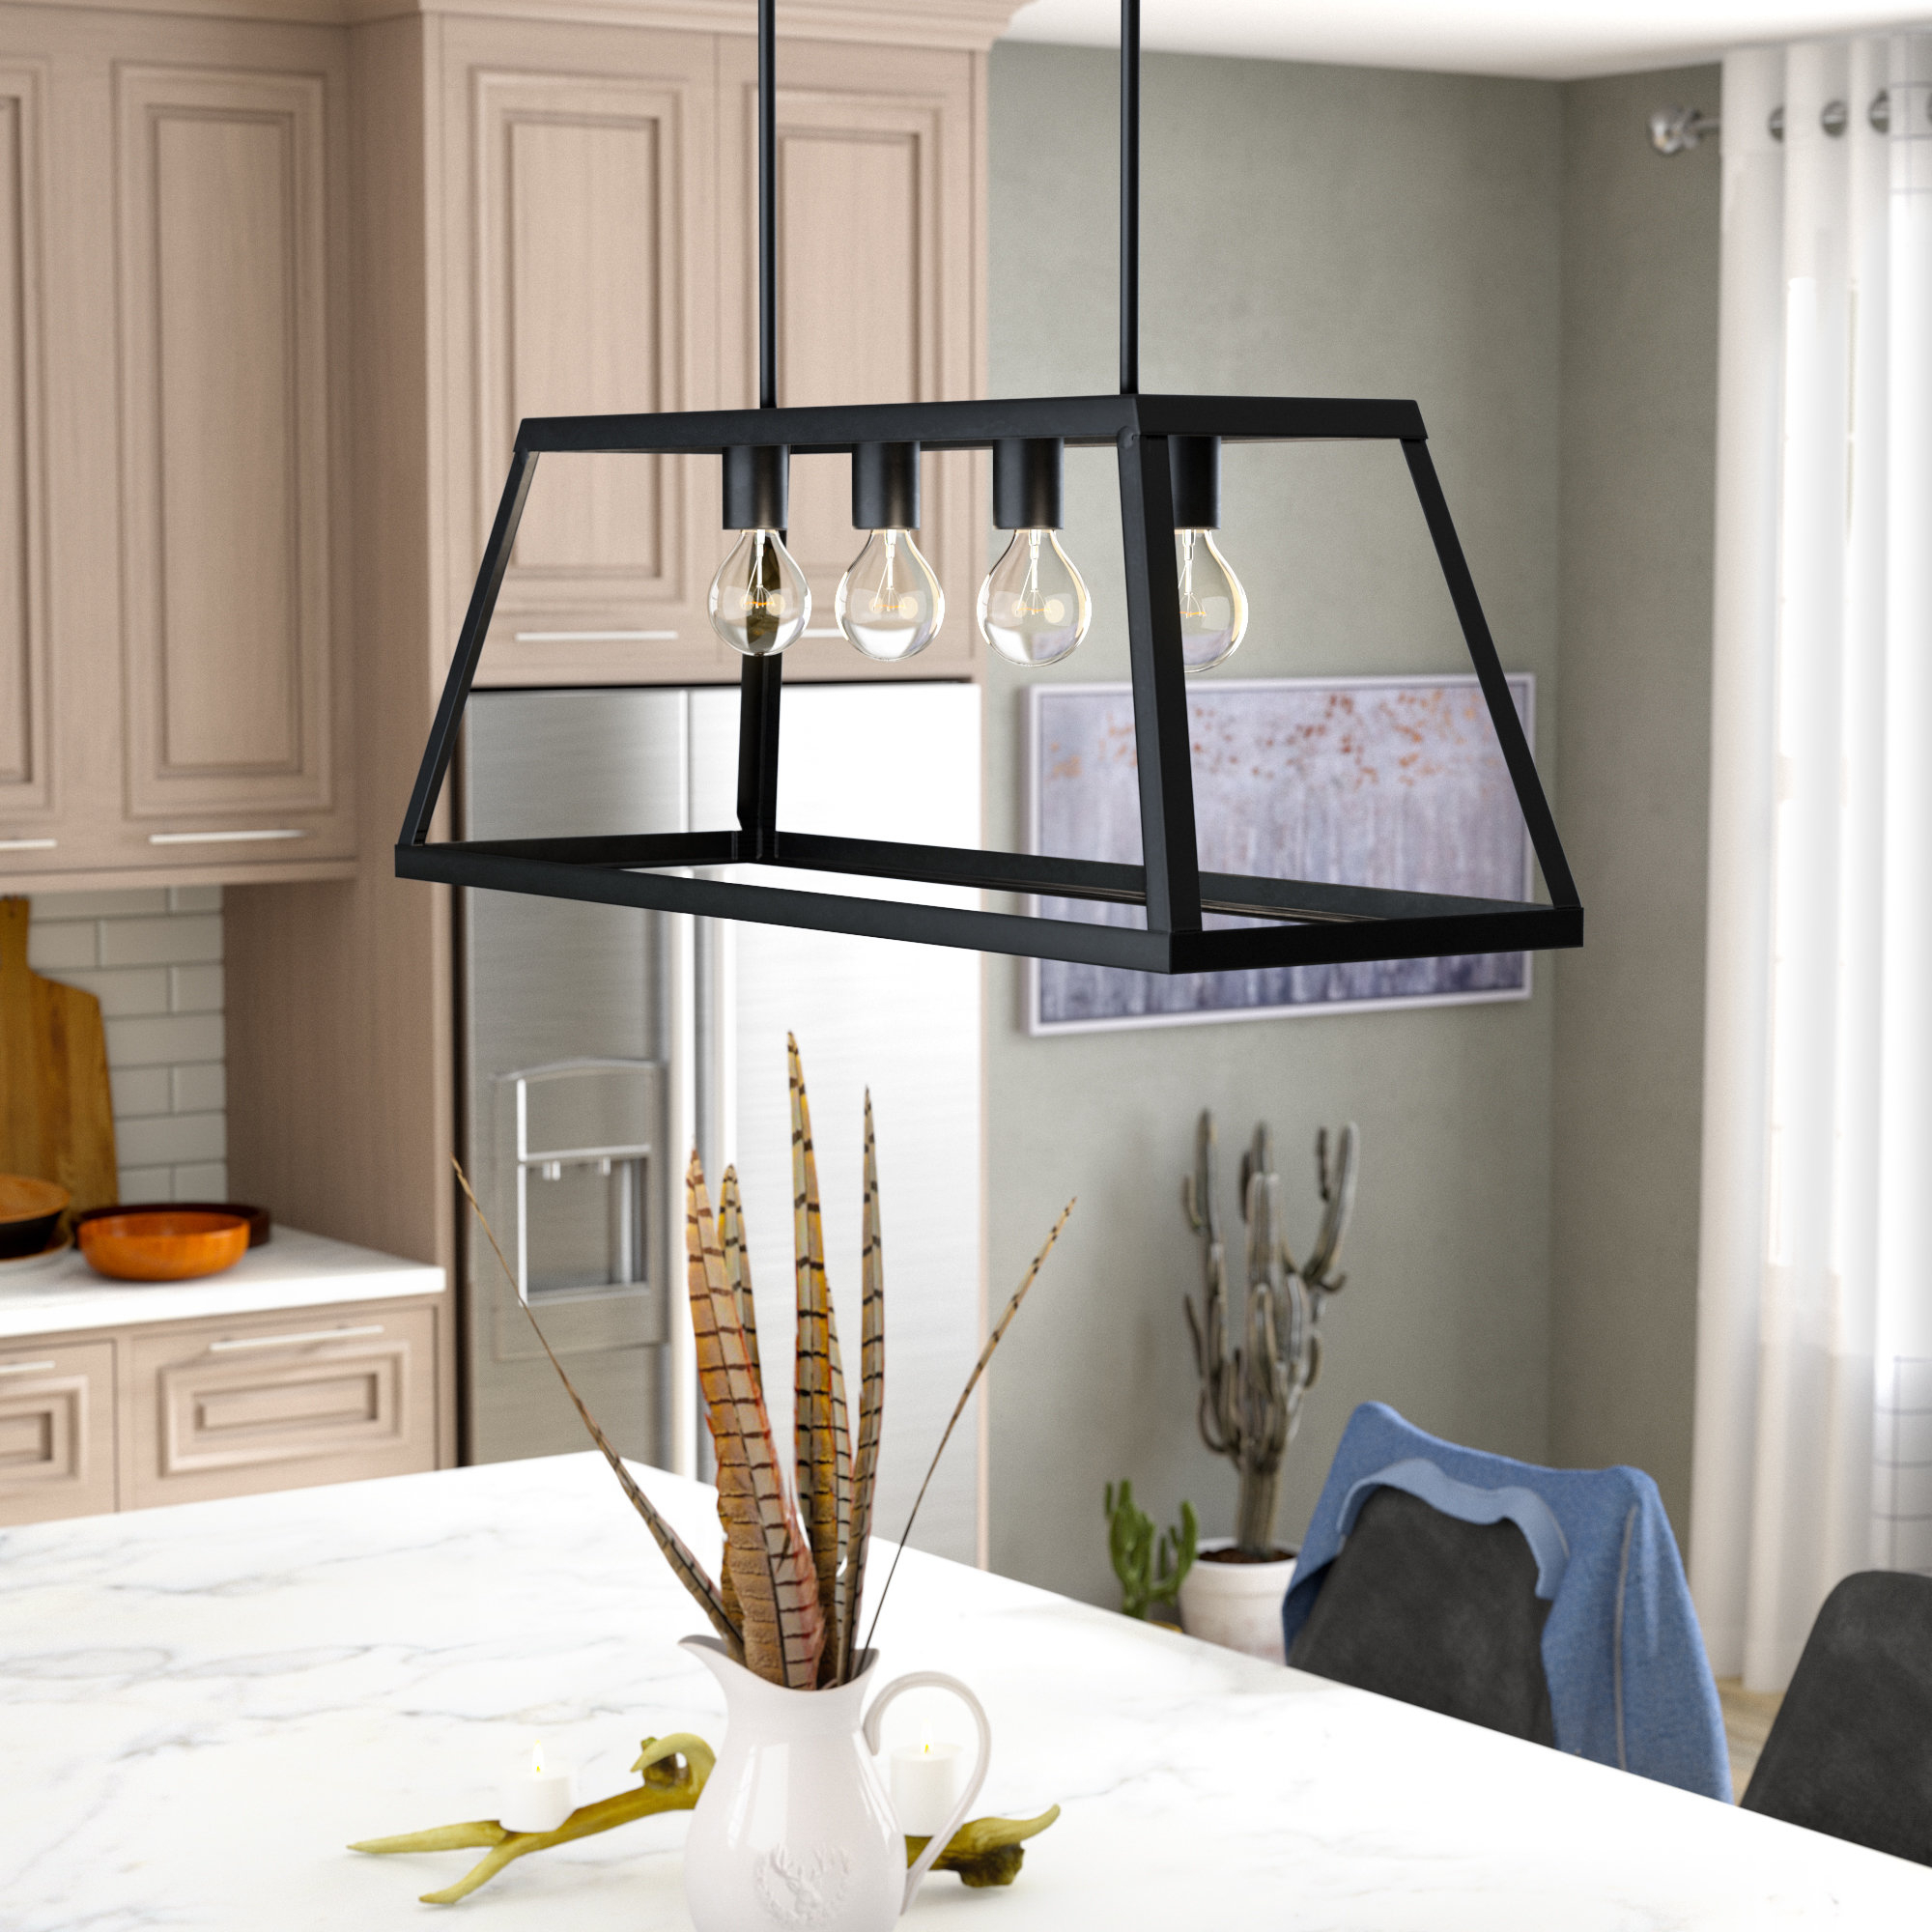 Murray 4 Light Kitchen Island Linear Pendant With Regard To Sousa 4 Light Kitchen Island Linear Pendants (View 12 of 30)